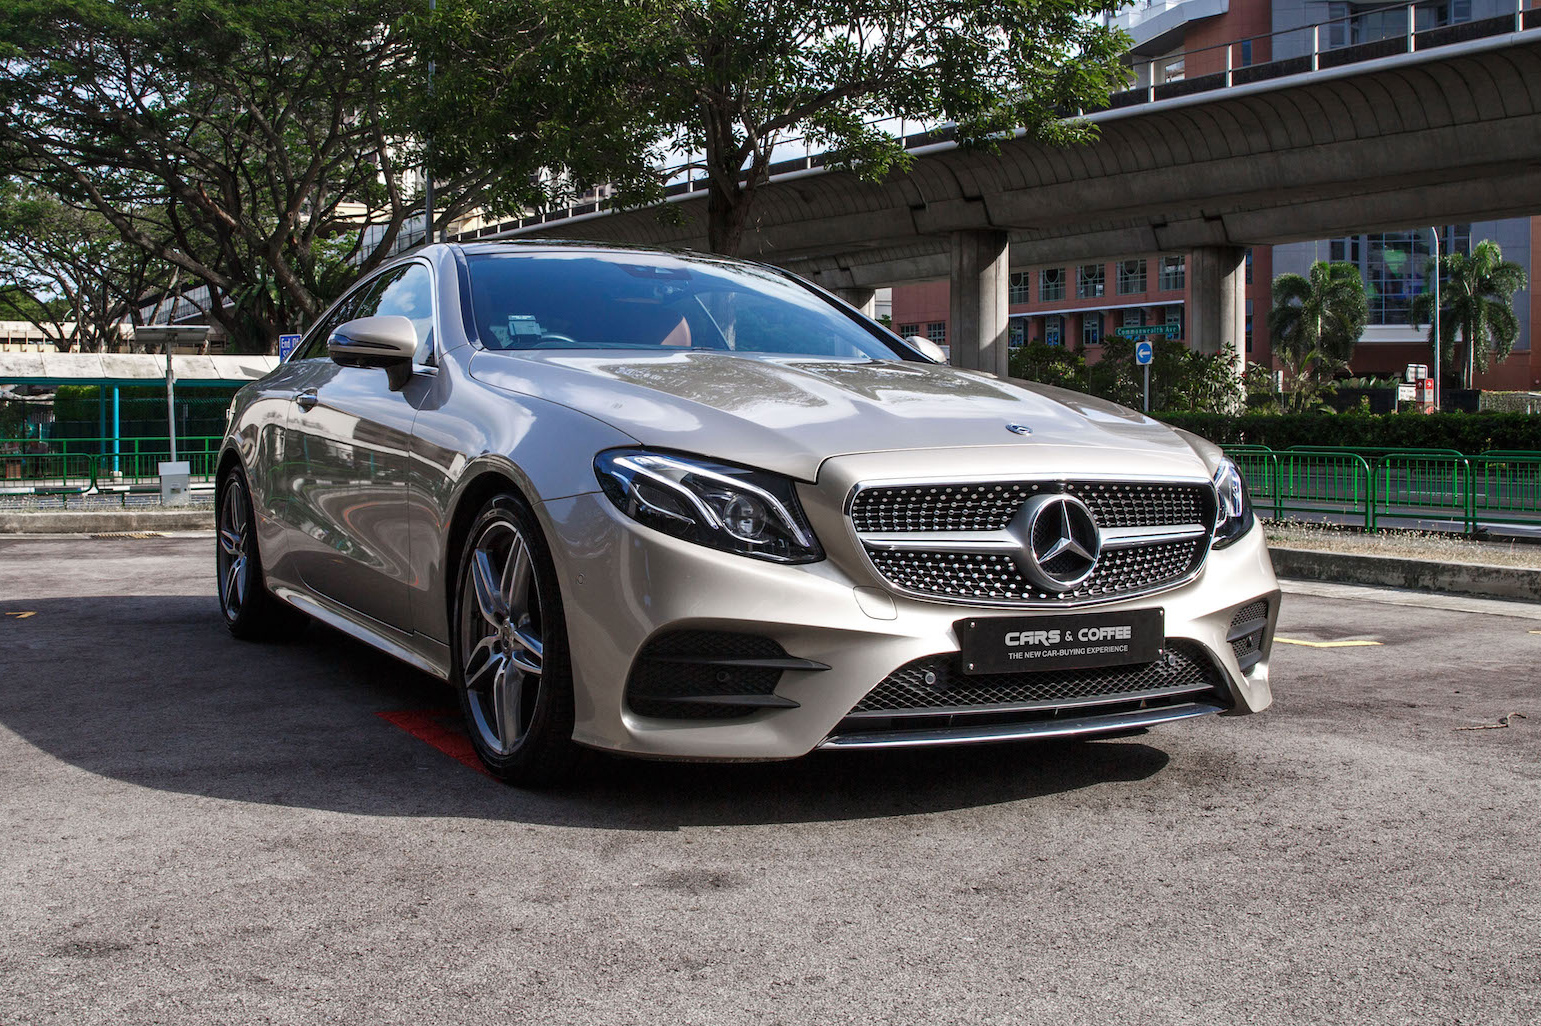 Certified Pre-Owned Mercedes-Benz E300 Coupé AMG | Cars and Coffee Singapore